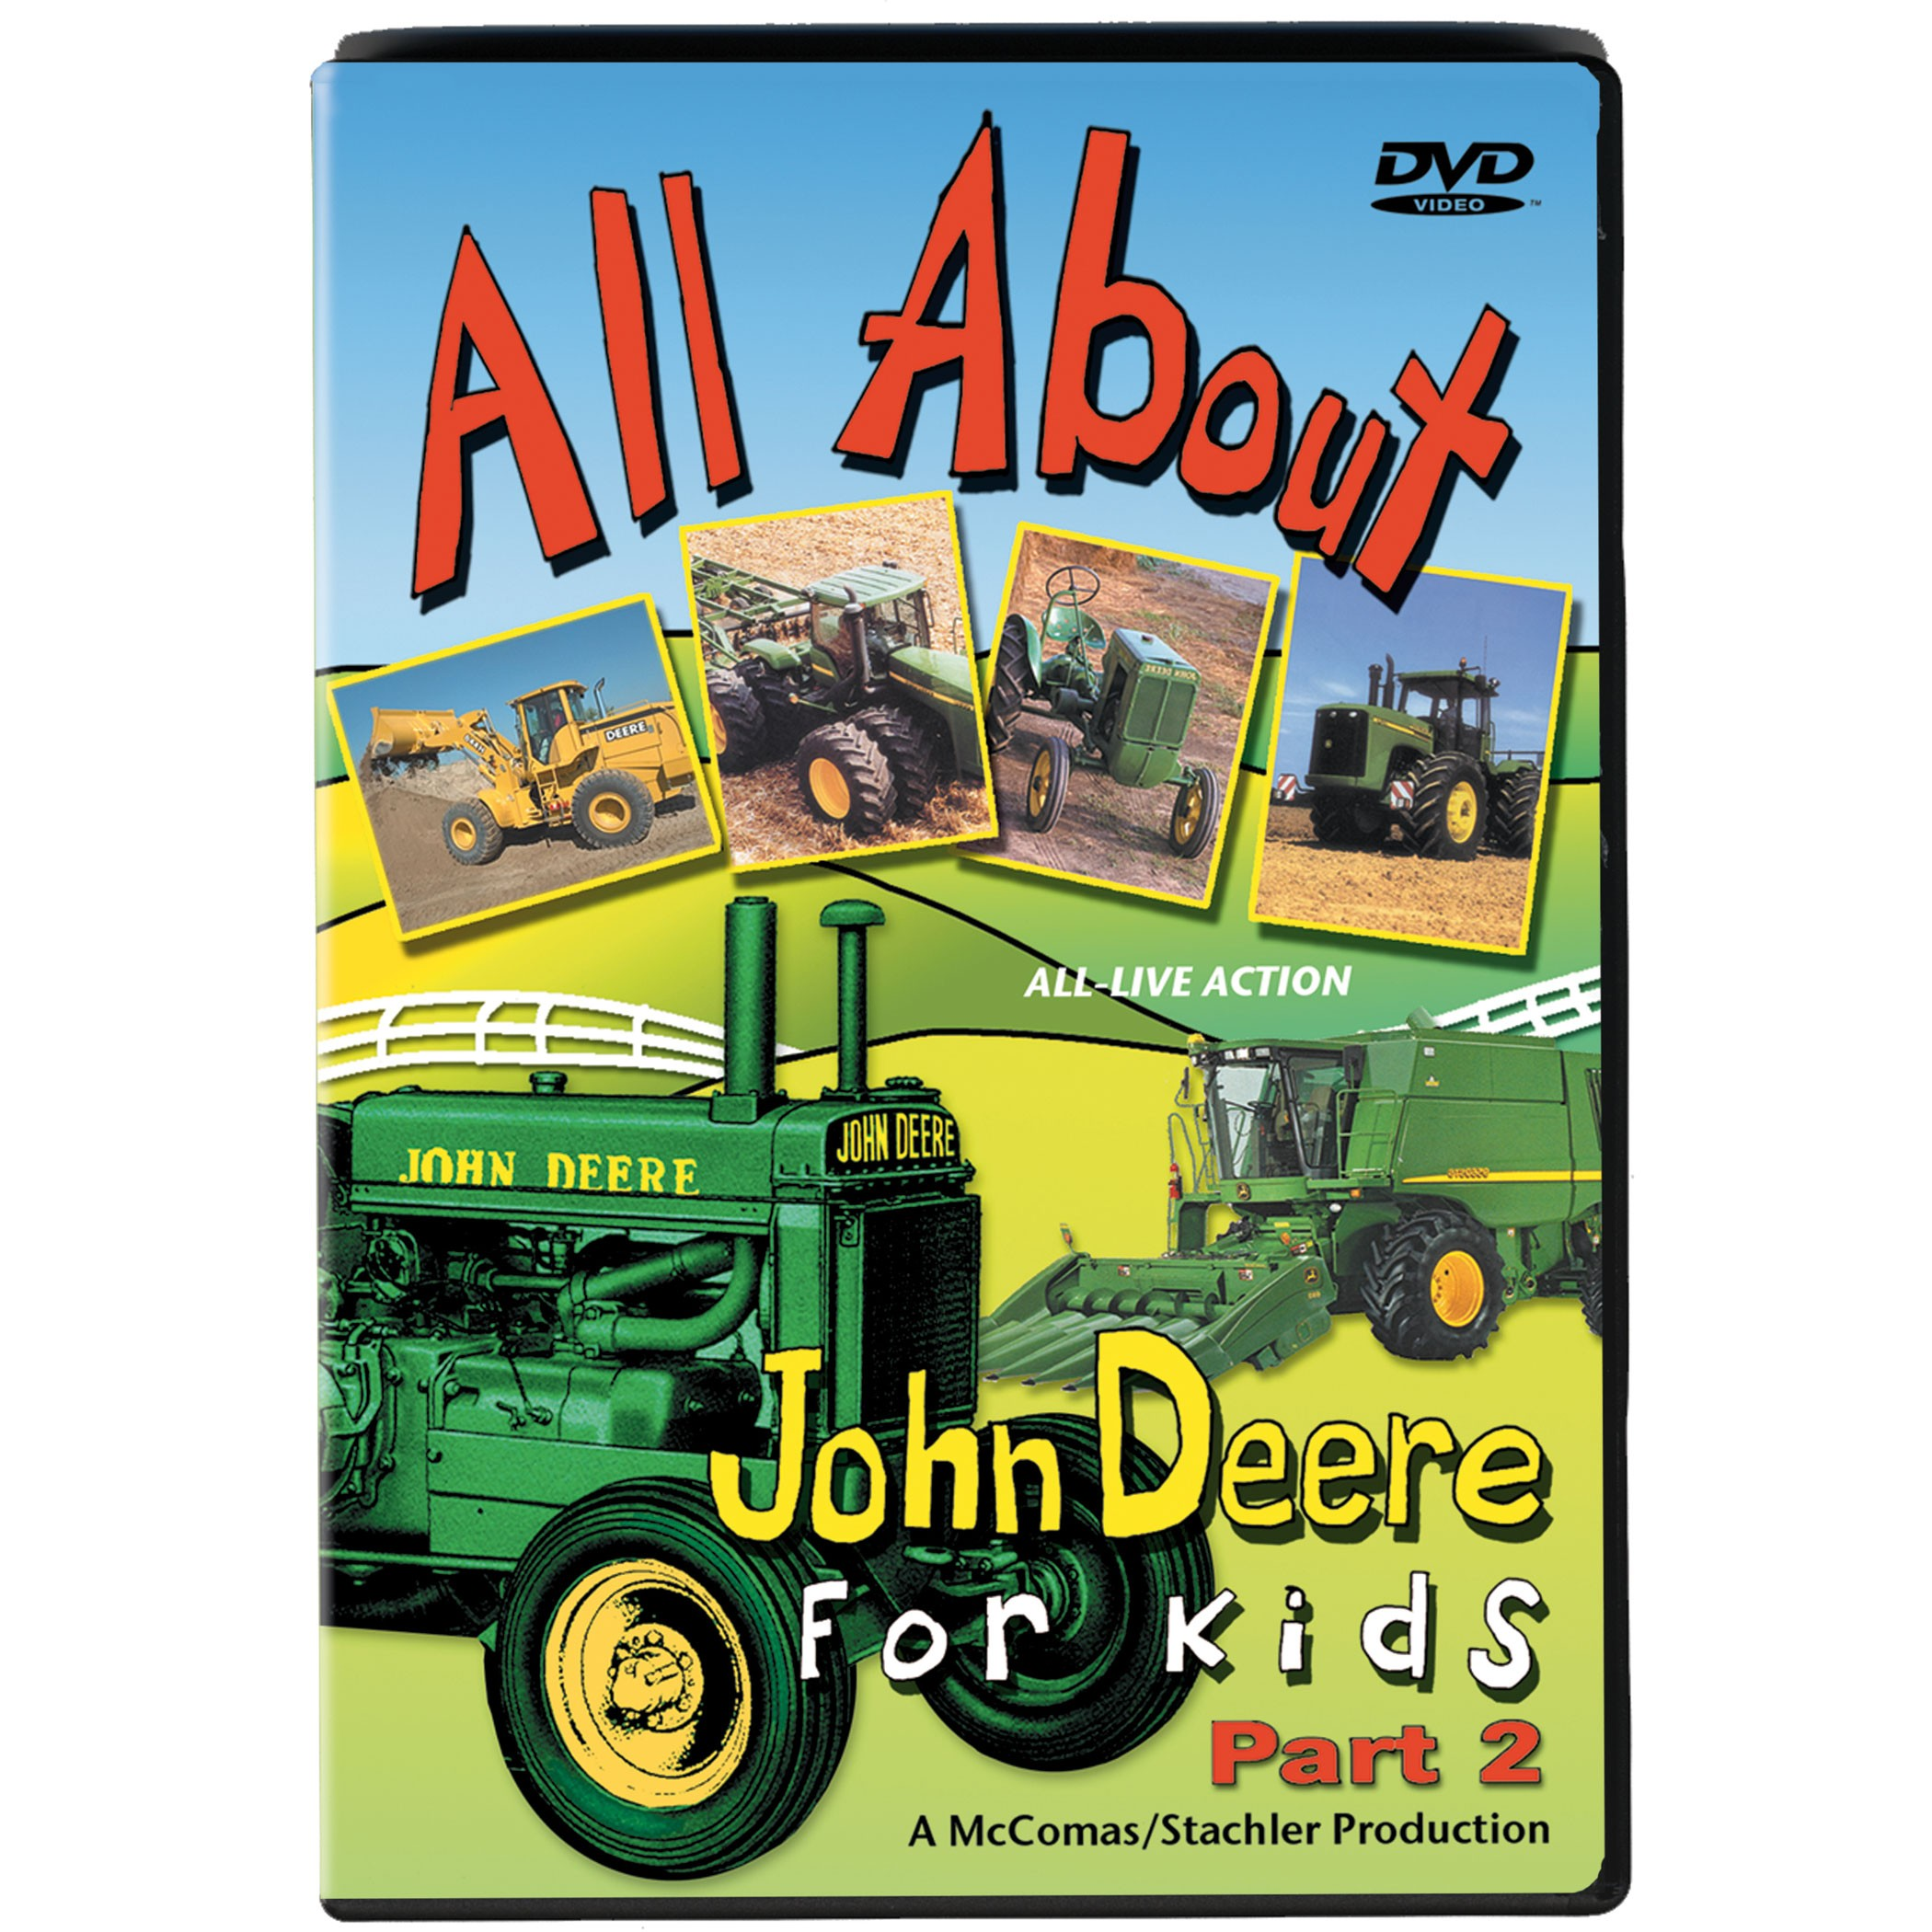 facts from beginning to end on the All About John Deere DVD ...